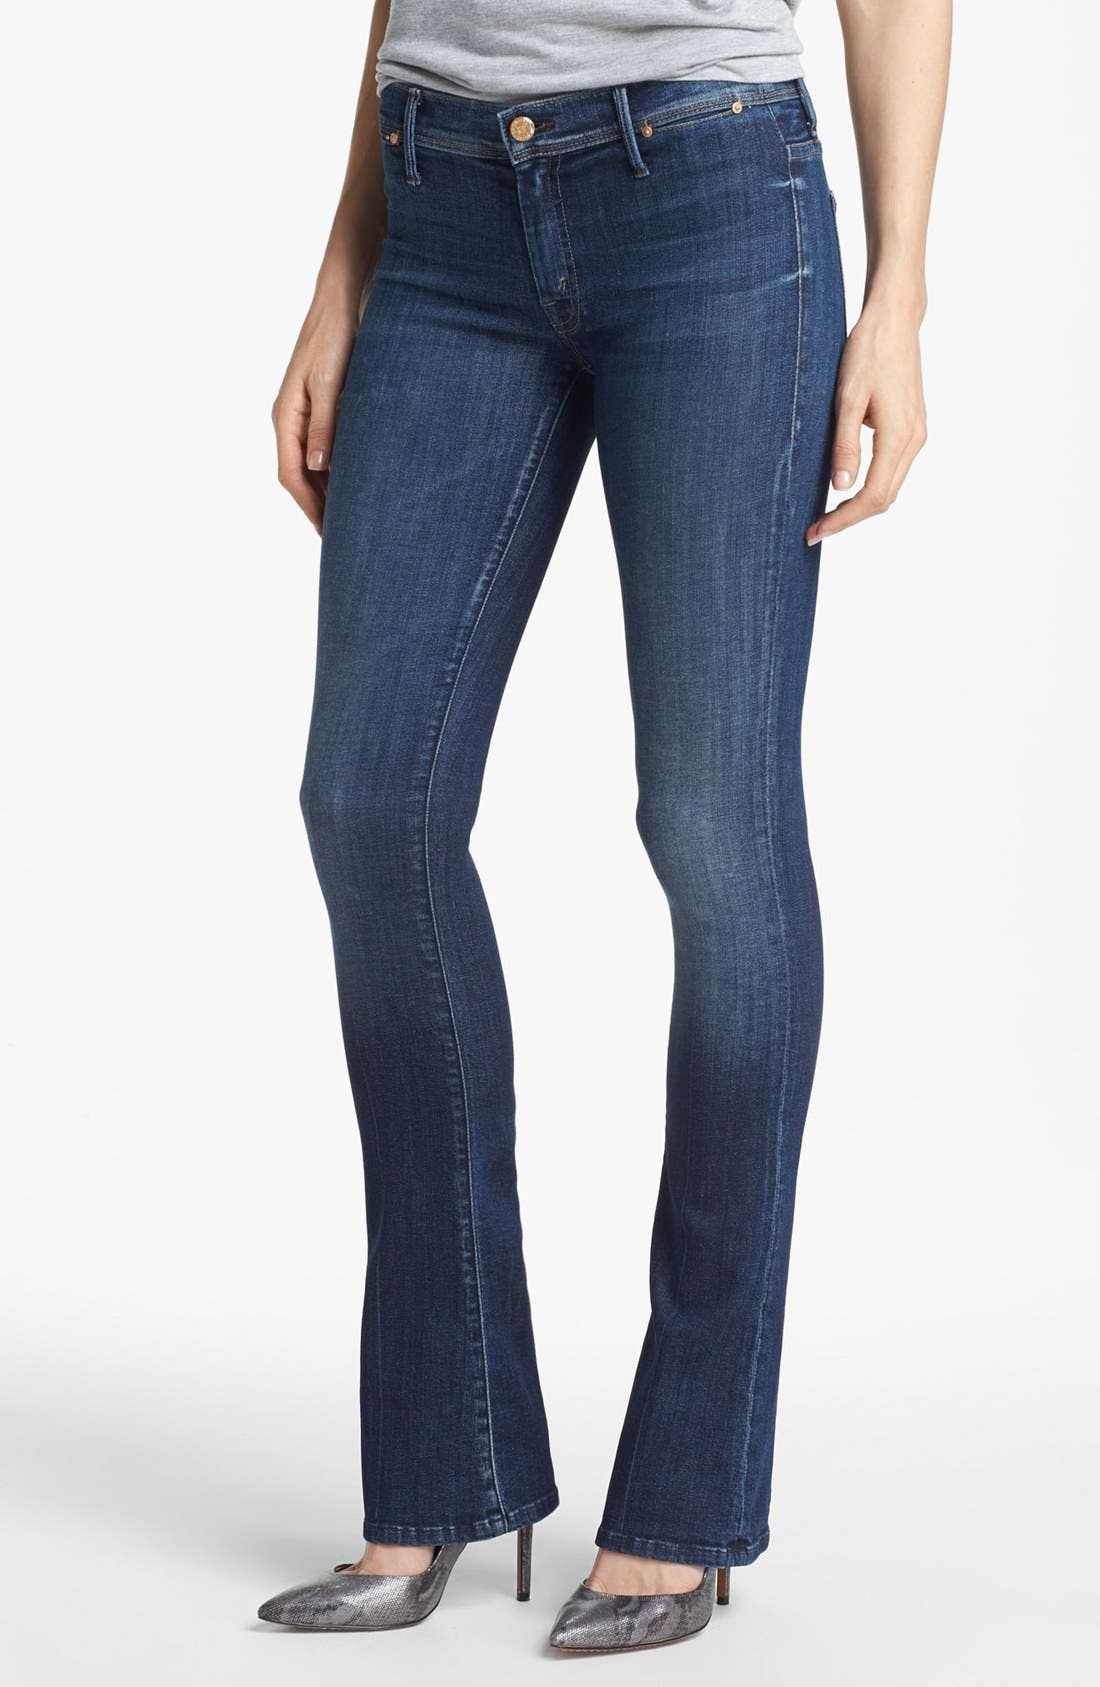 'The Daydreamer' Skinny Flare Leg Jeans,                         Main,                         color, Tempted Again